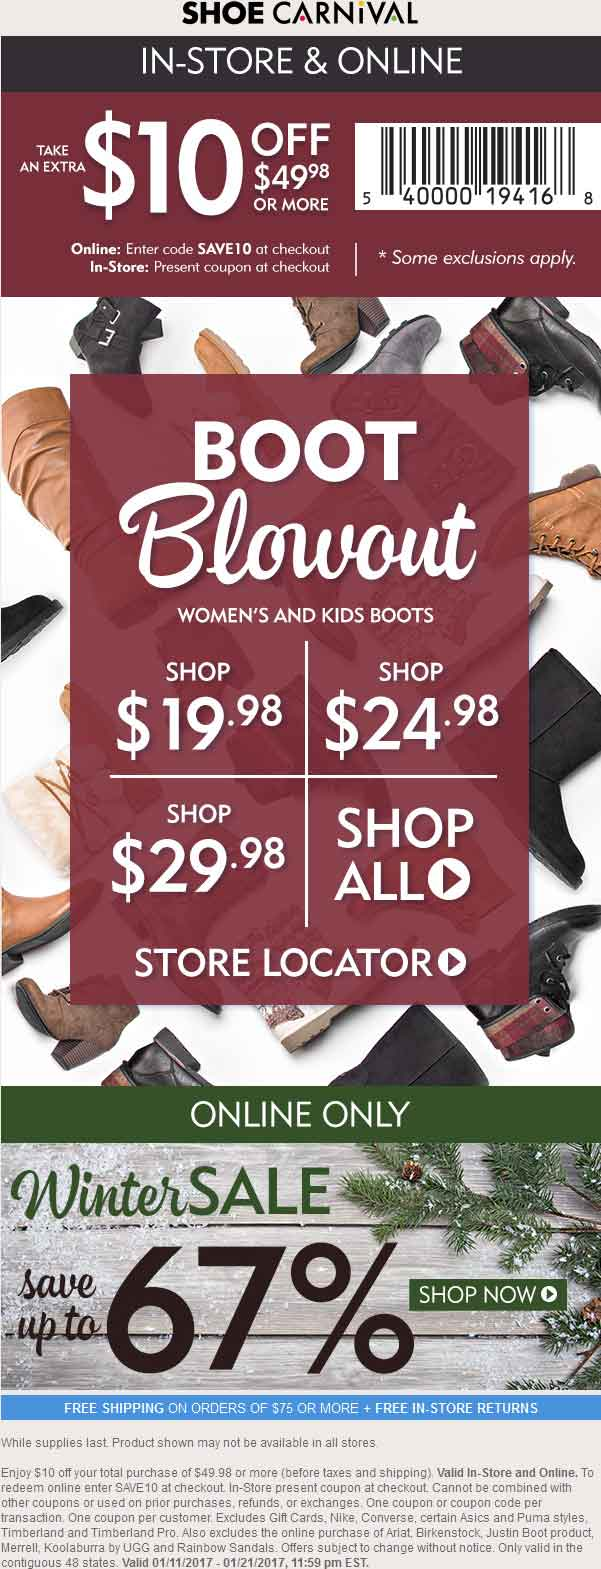 ShoeCarnival.com Promo Coupon $10 off $50 at Shoe Carnival, or online via promo code SAVE10